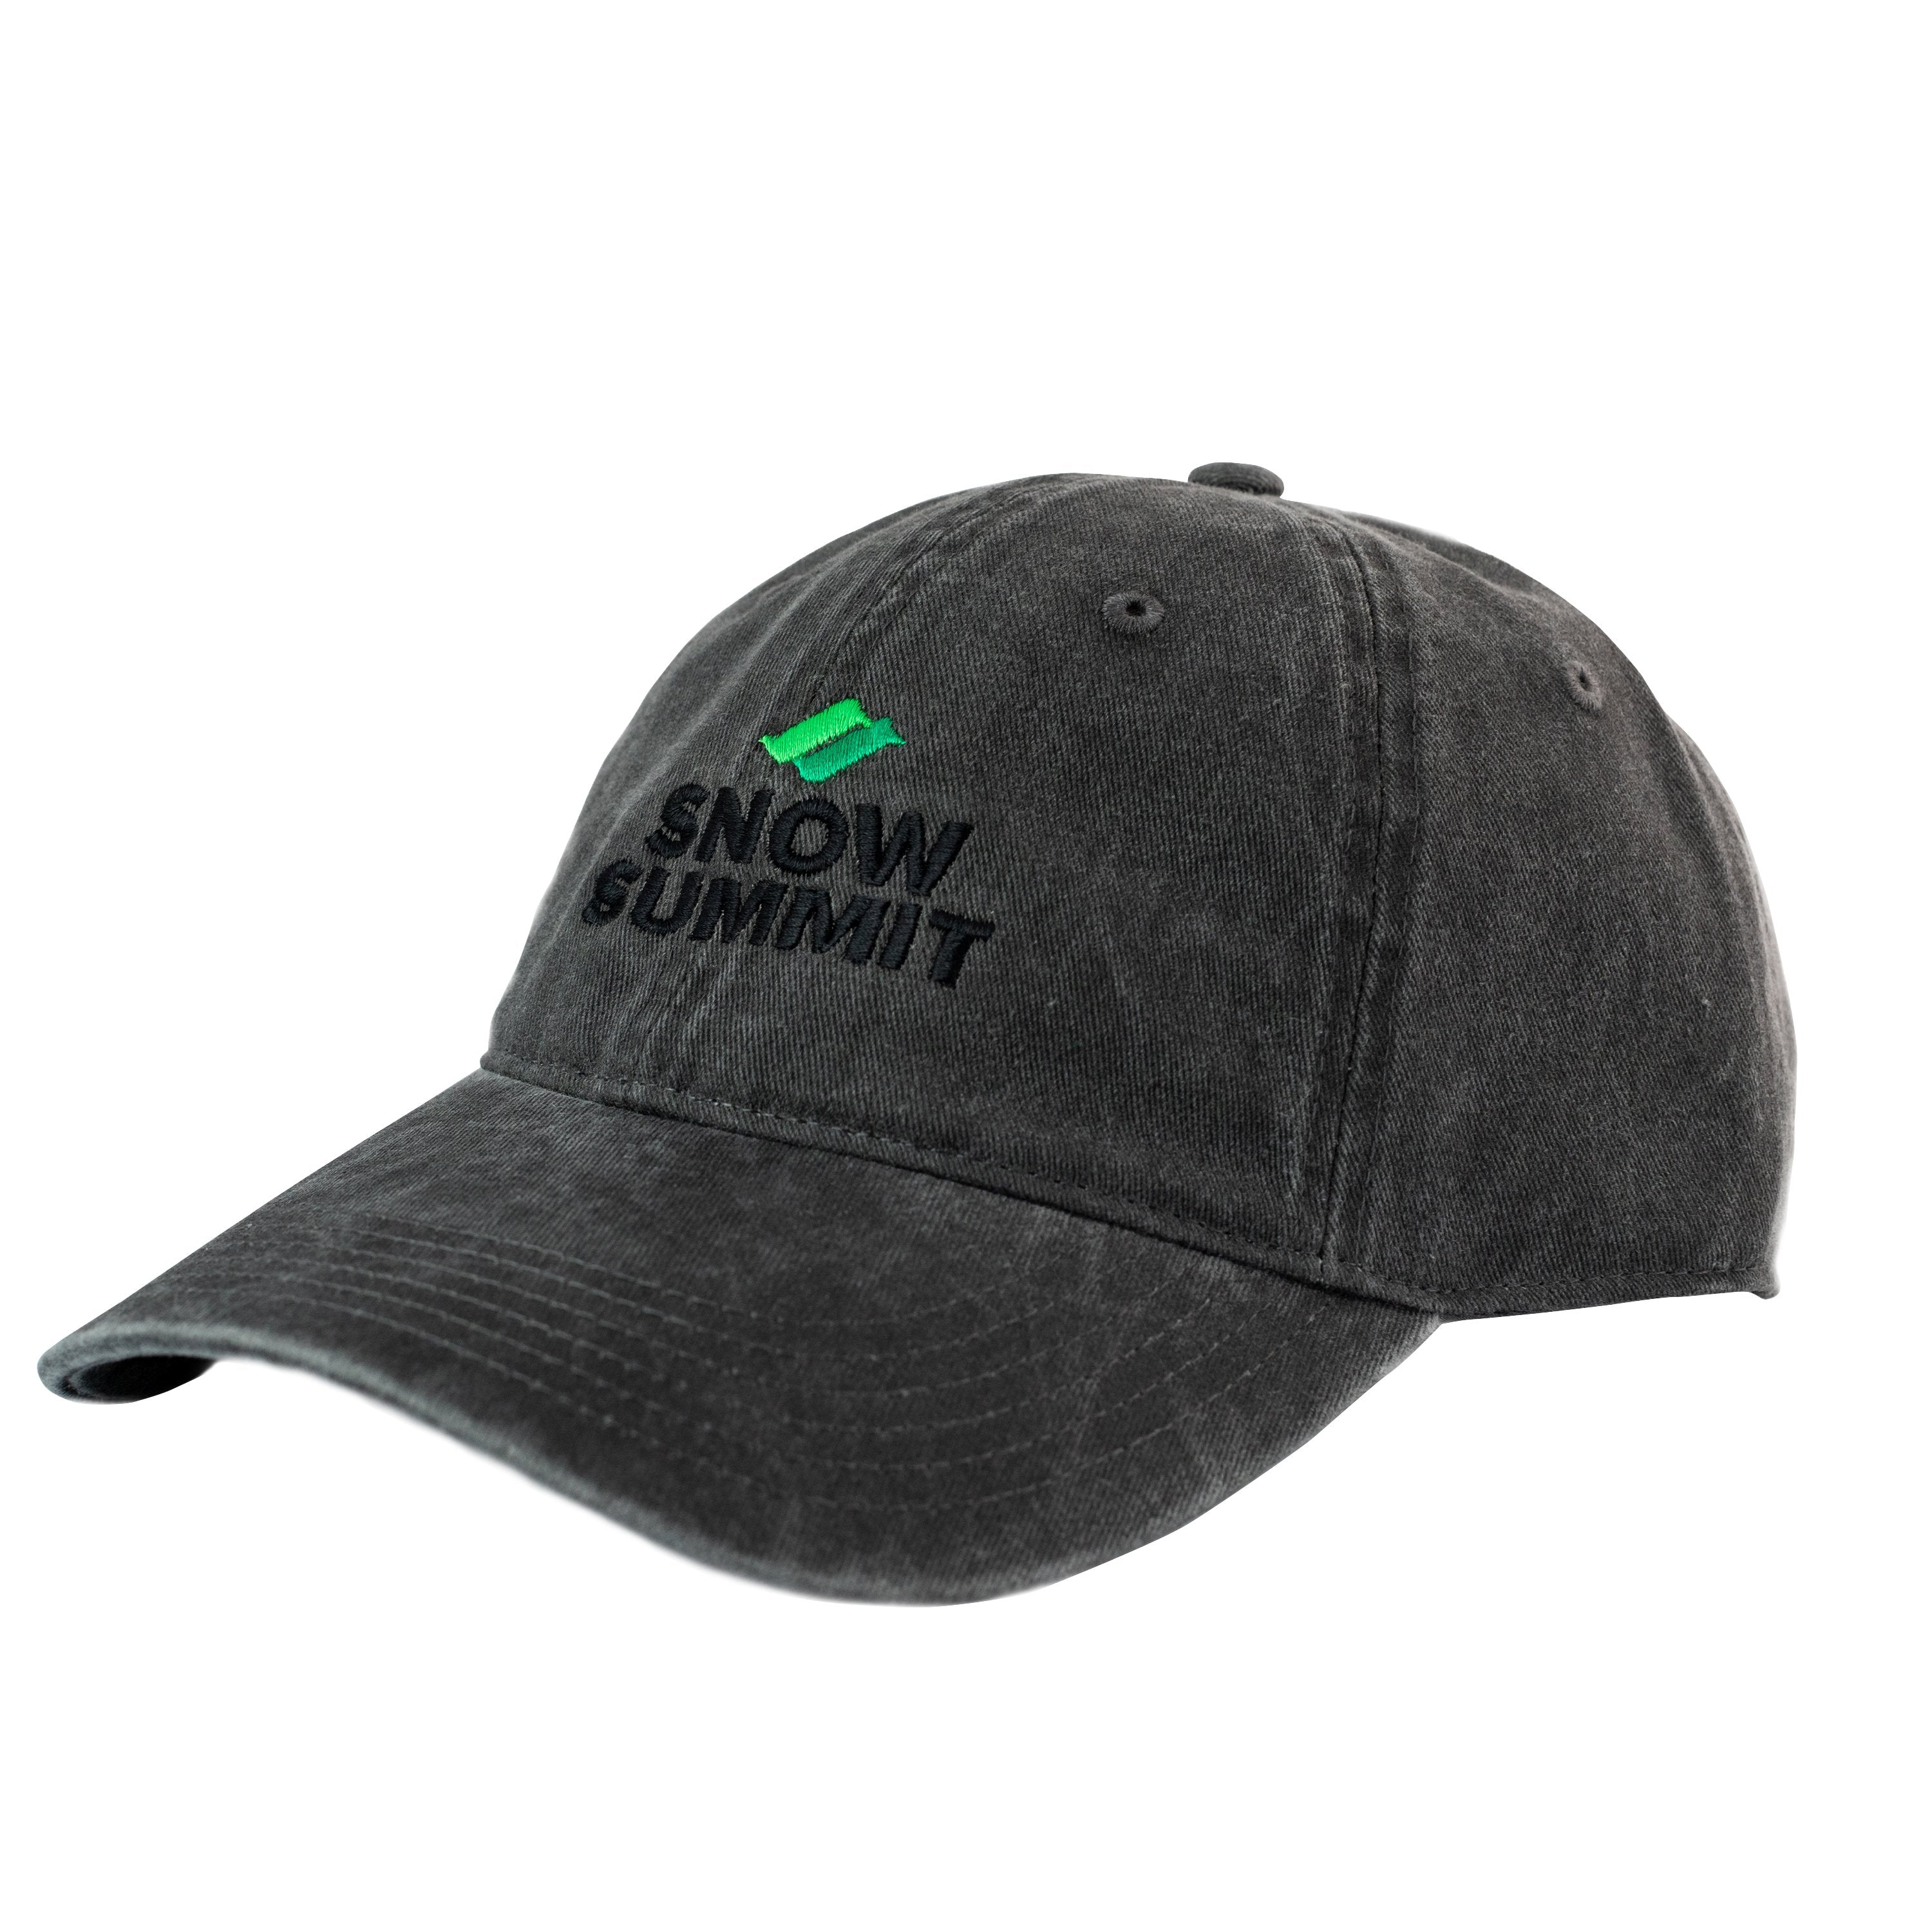 Charcoal Cap with Embroidered Snow Summit Logo